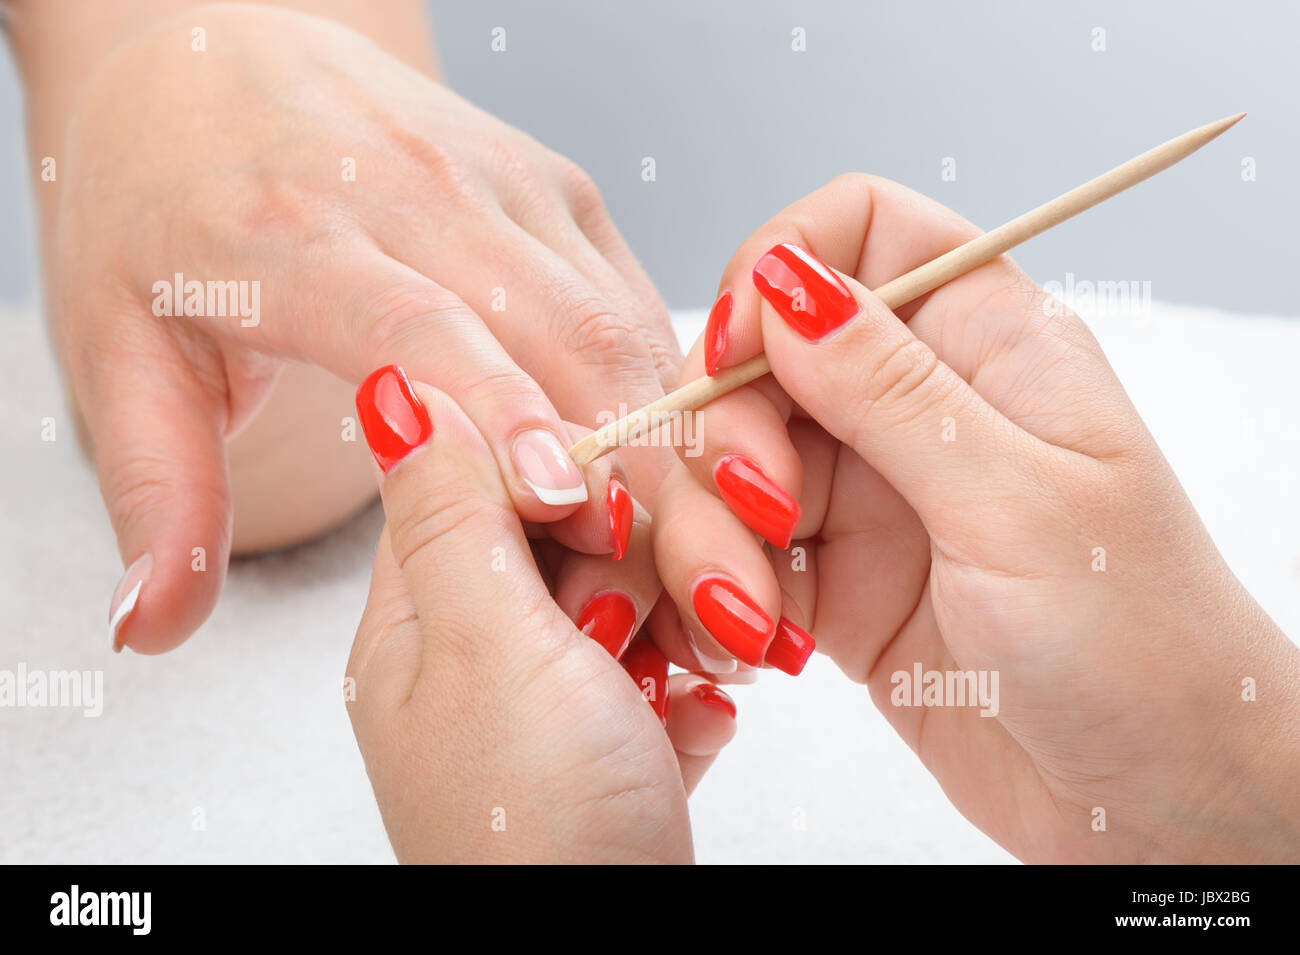 Cuticles care with cuticle pusher Stock Photo: 145016804 - Alamy